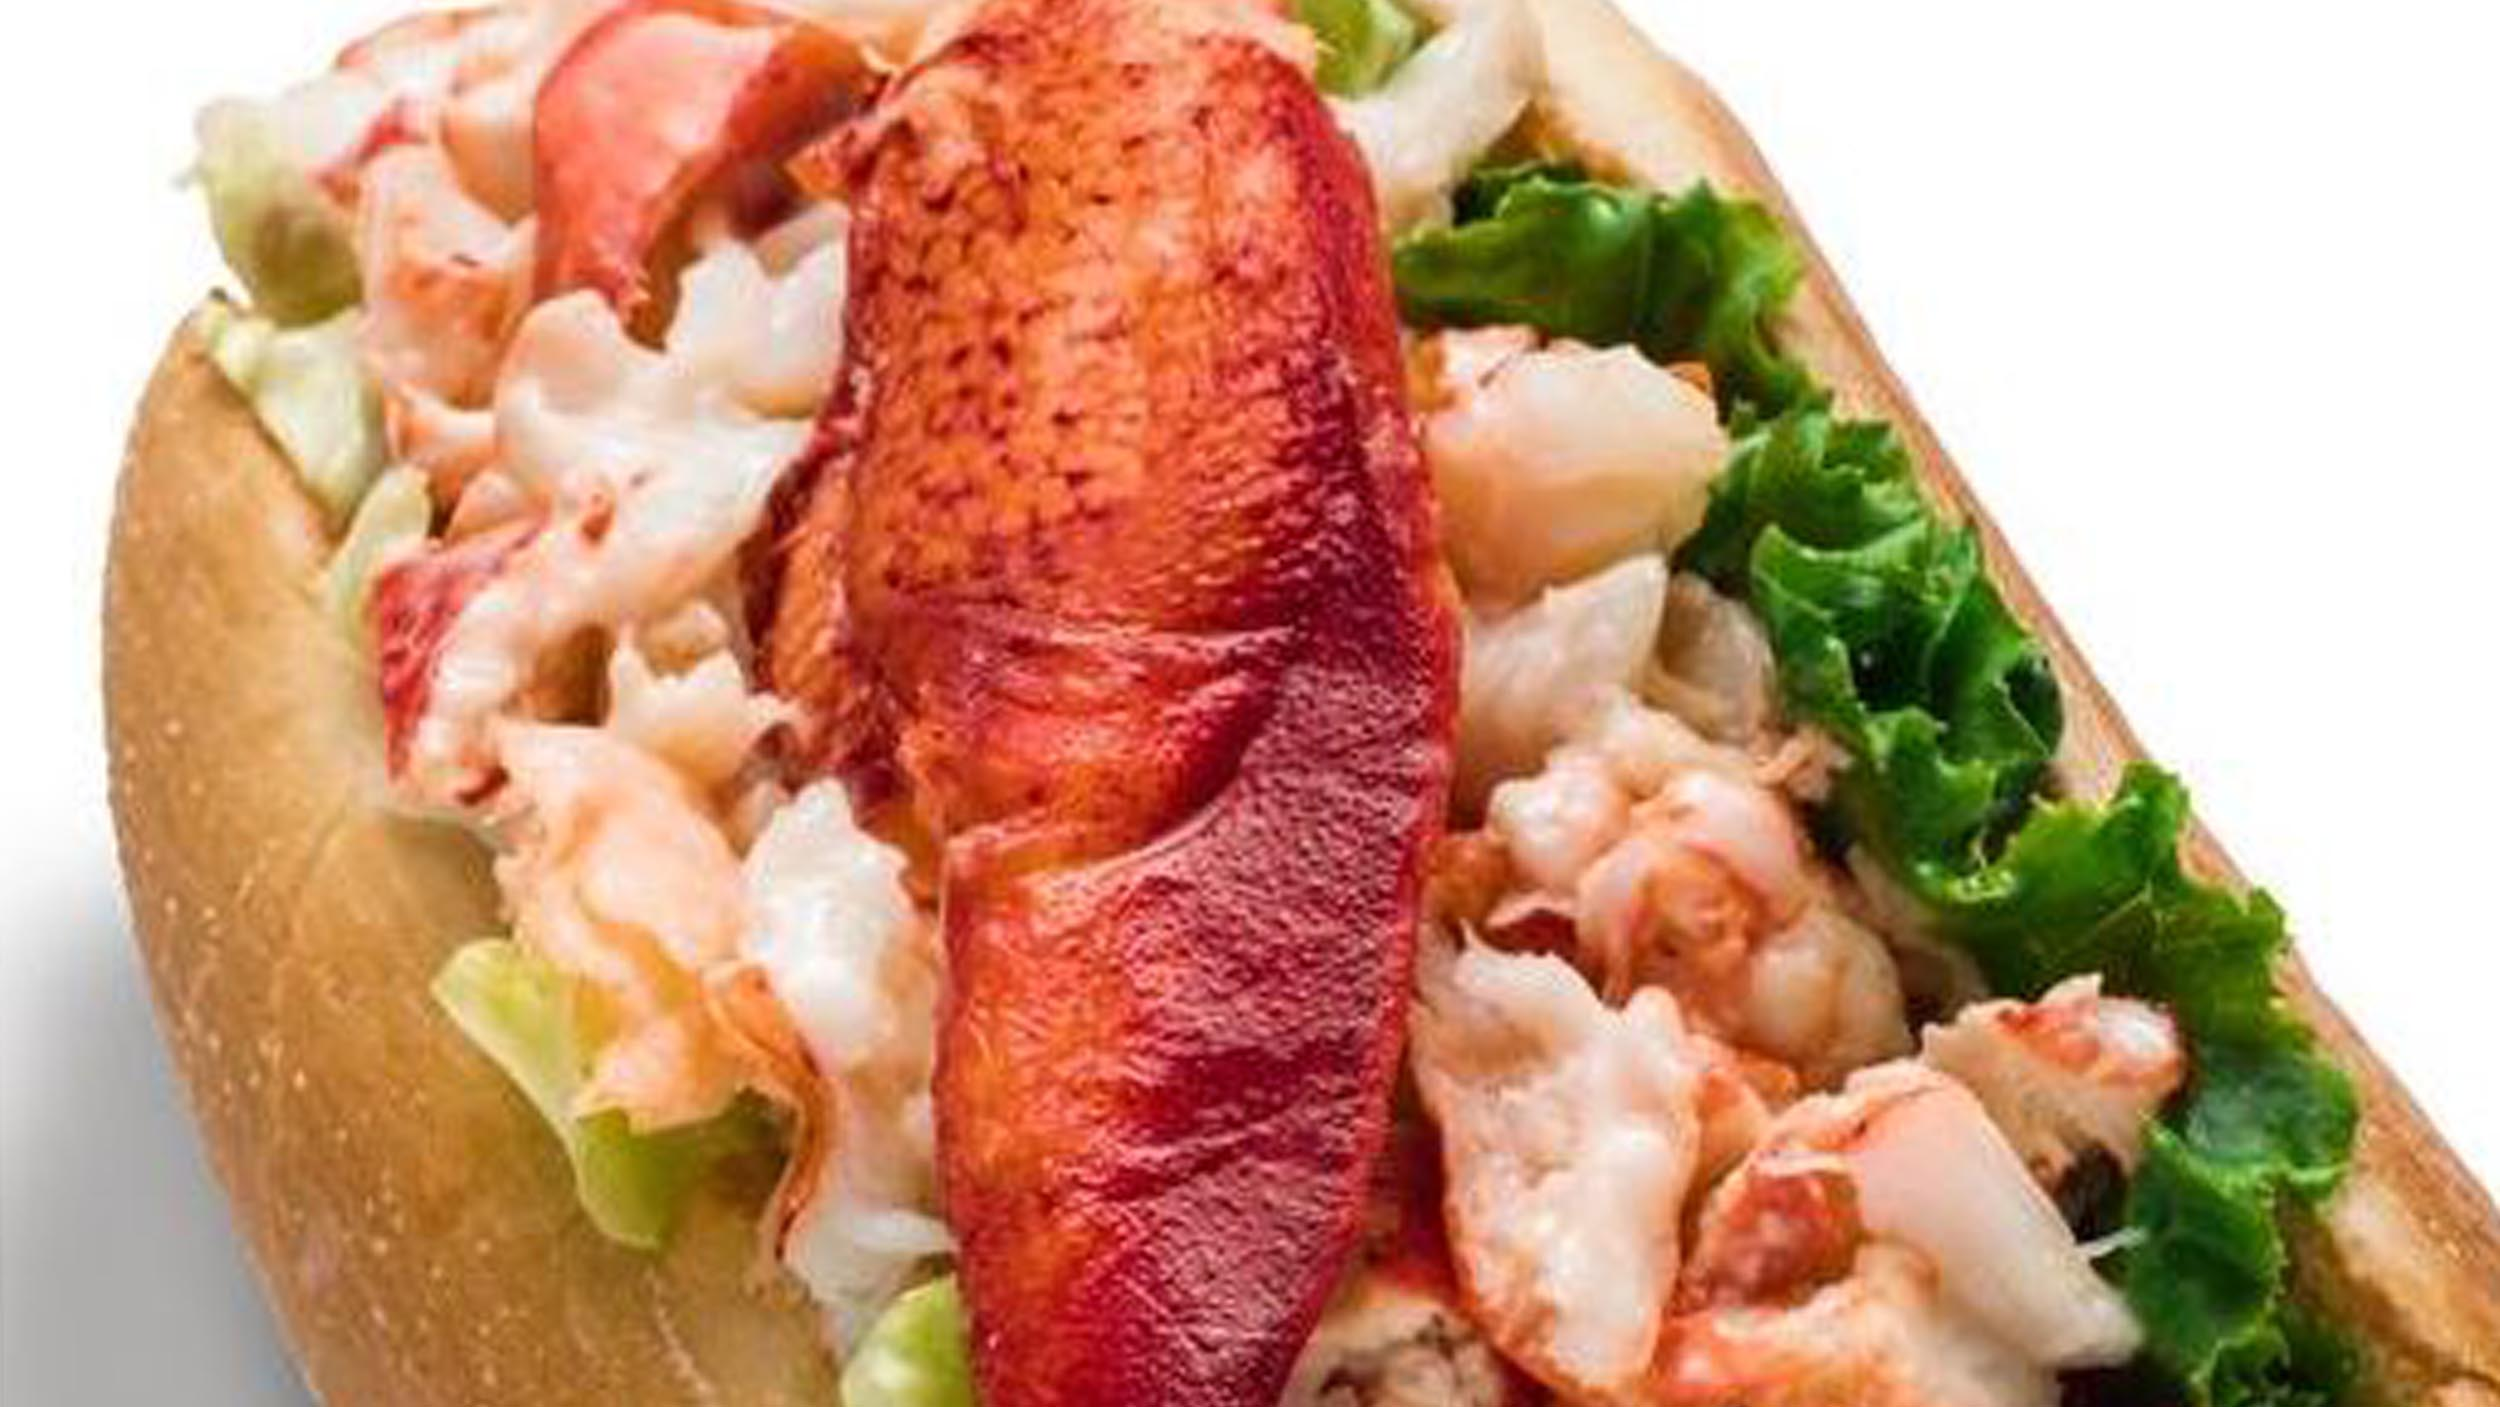 McDonald's offering lobster rolls, pulled pork sandwiches - TODAY.com